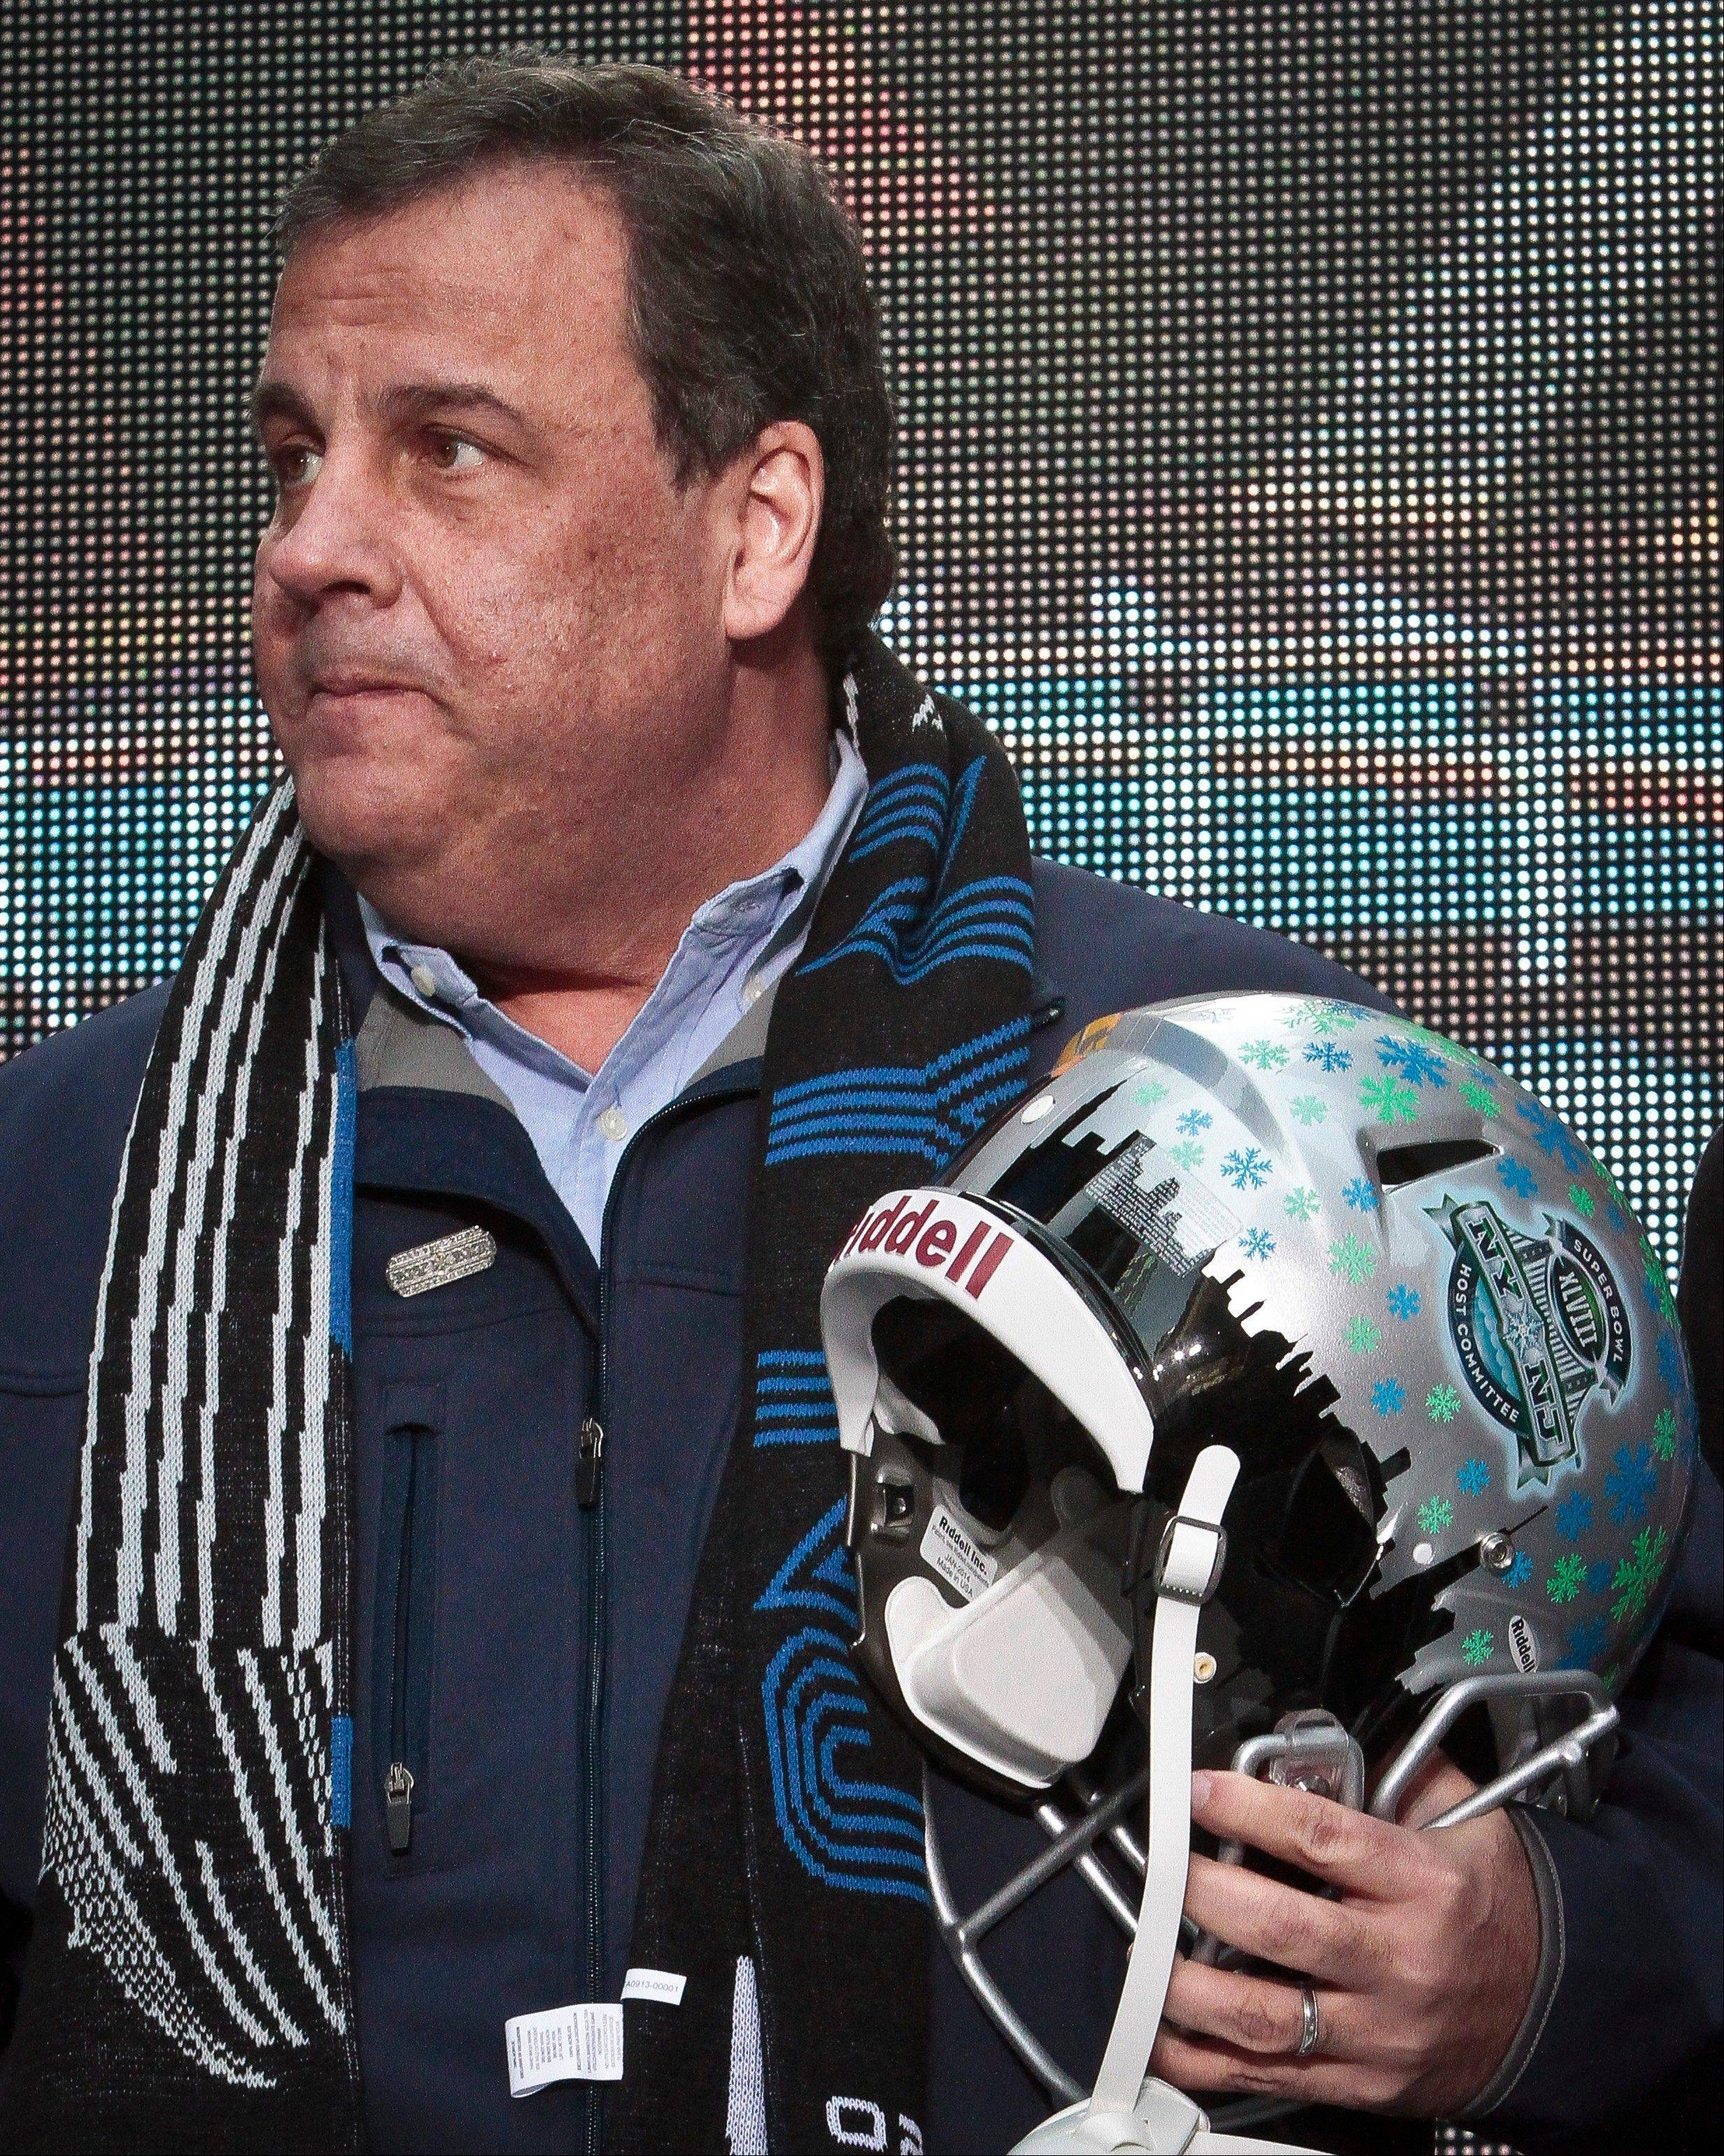 New Jersey Gov. Chris Christie holds a souvenir football helmet Saturday as he leaves after a ceremony to pass official hosting duties of next year's Super Bowl to representatives from Arizona.